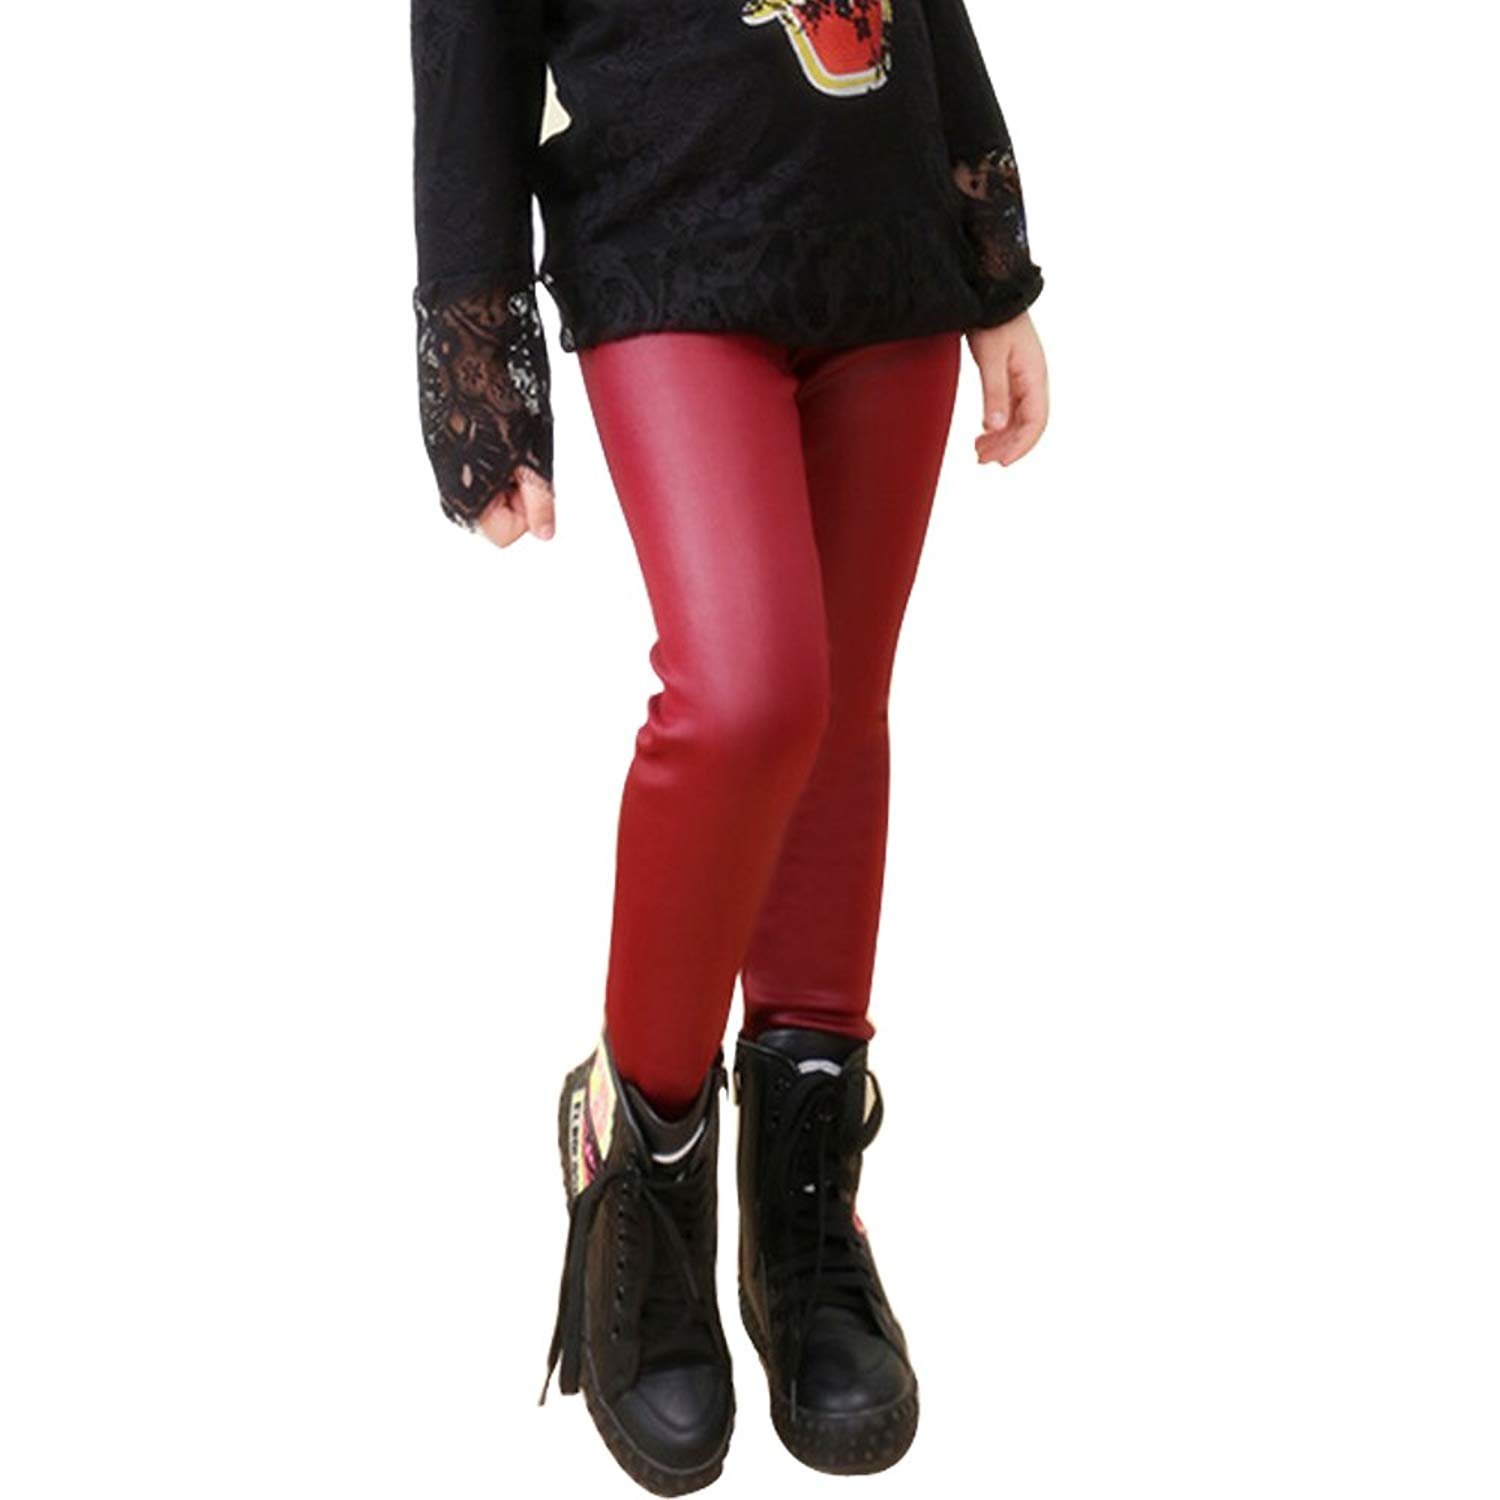 Tulucky Girls Winter Warm Pants Thick Fleece Lined Faux Leather Stretchy Teens Leggings